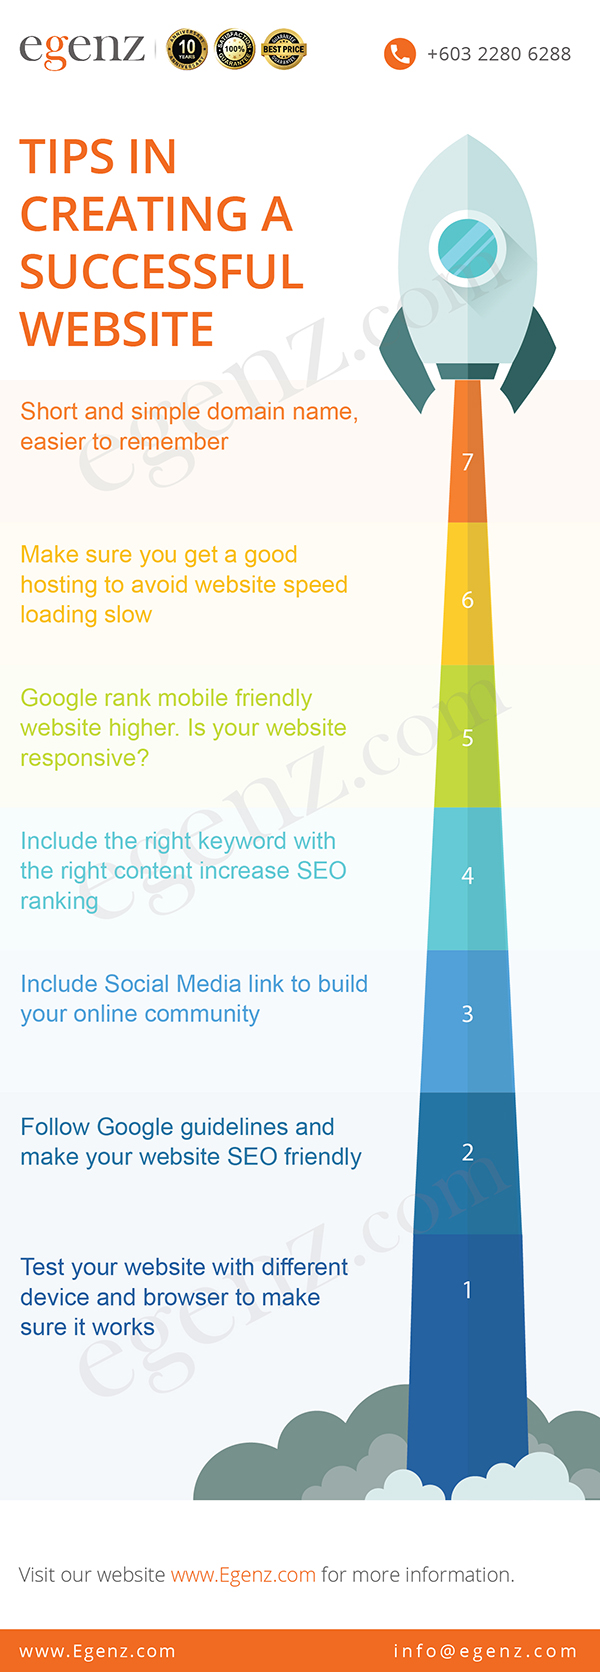 Infographic-Tips-In-Creating-A-Successful-Website-Mobile-Egenz.com